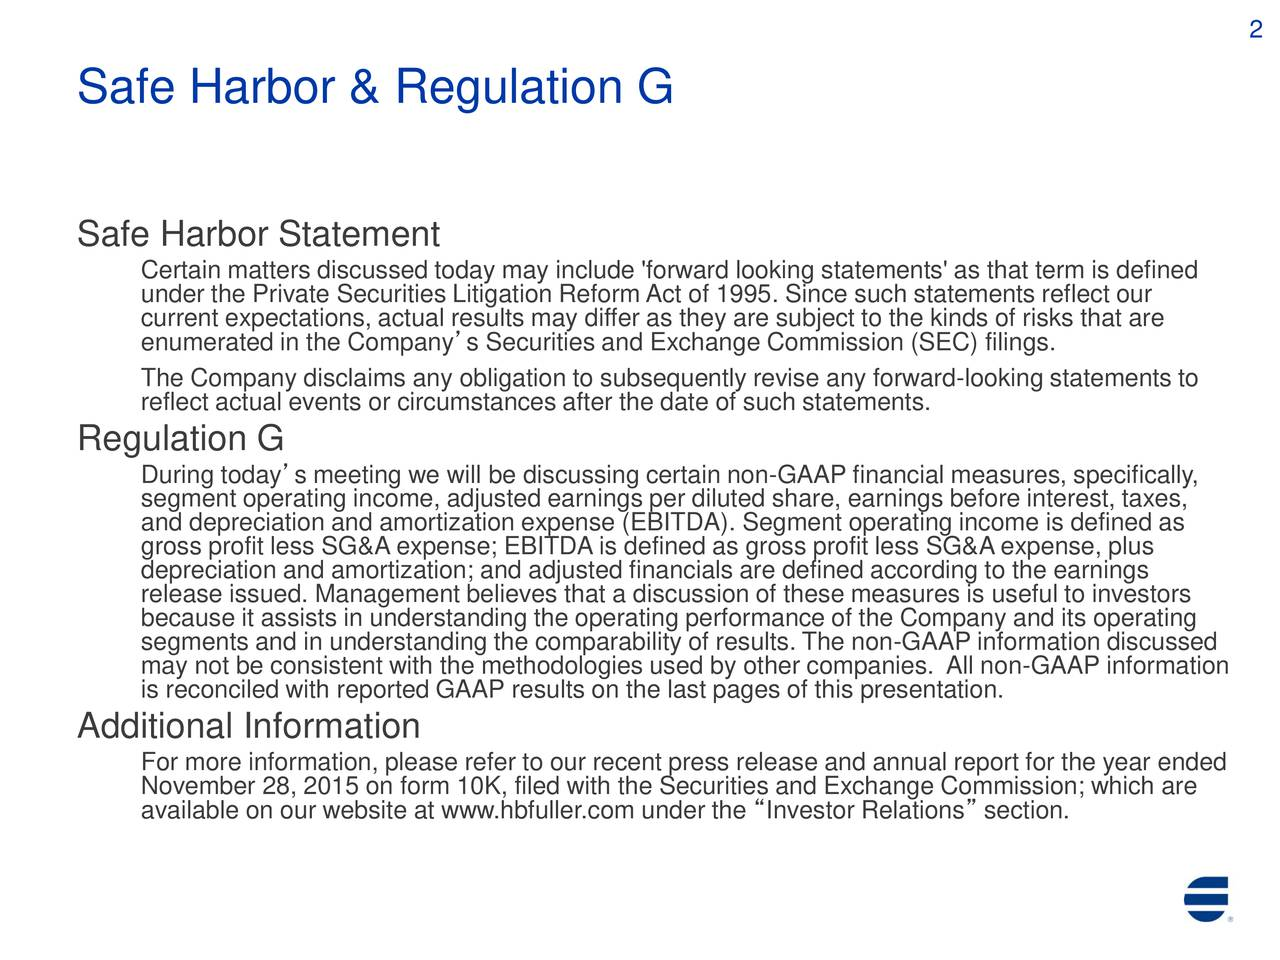 Safe Harbor & Regulation G Safe Harbor Statement Certain matters discussed today may include 'forward looking statements' as that term is defined under the Private Securities Litigation Reform Act of 1995. Since such statements reflect our current expectations, actual results may differ as they are subject to the kinds of risks that are enumerated in the Companys Securities and Exchange Commission (SEC) filings. The Company disclaims any obligation to subsequently revise any forward-looking statements to reflect actual events or circumstances after the date of such statements. Regulation G segment operating income, adjusted earnings per diluted share, earnings before interest, taxes, and depreciation and amortization expense (EBITDA). Segment operating income is defined as gross profit less SG&A expense; EBITDA is defined as gross profit less SG&A expense, plus depreciation and amortization; and adjusted financials are defined according to the earnings release issued. Management believes that a discussion of these measures is useful to investors because it assists in understanding the operating performance of the Company and its operating segments and in understanding the comparability of results. The non-GAAP information discussed is reconciled with reported GAAP results on the last pages of this presentation.AP information Additional Information For more information, please refer to our recent press release and annual report for the year ended November 28, 2015 on form 10K, filed with the Securities and Exchange Commission; which are available on our website at www.hbfuller.com under the Investor Relations section.